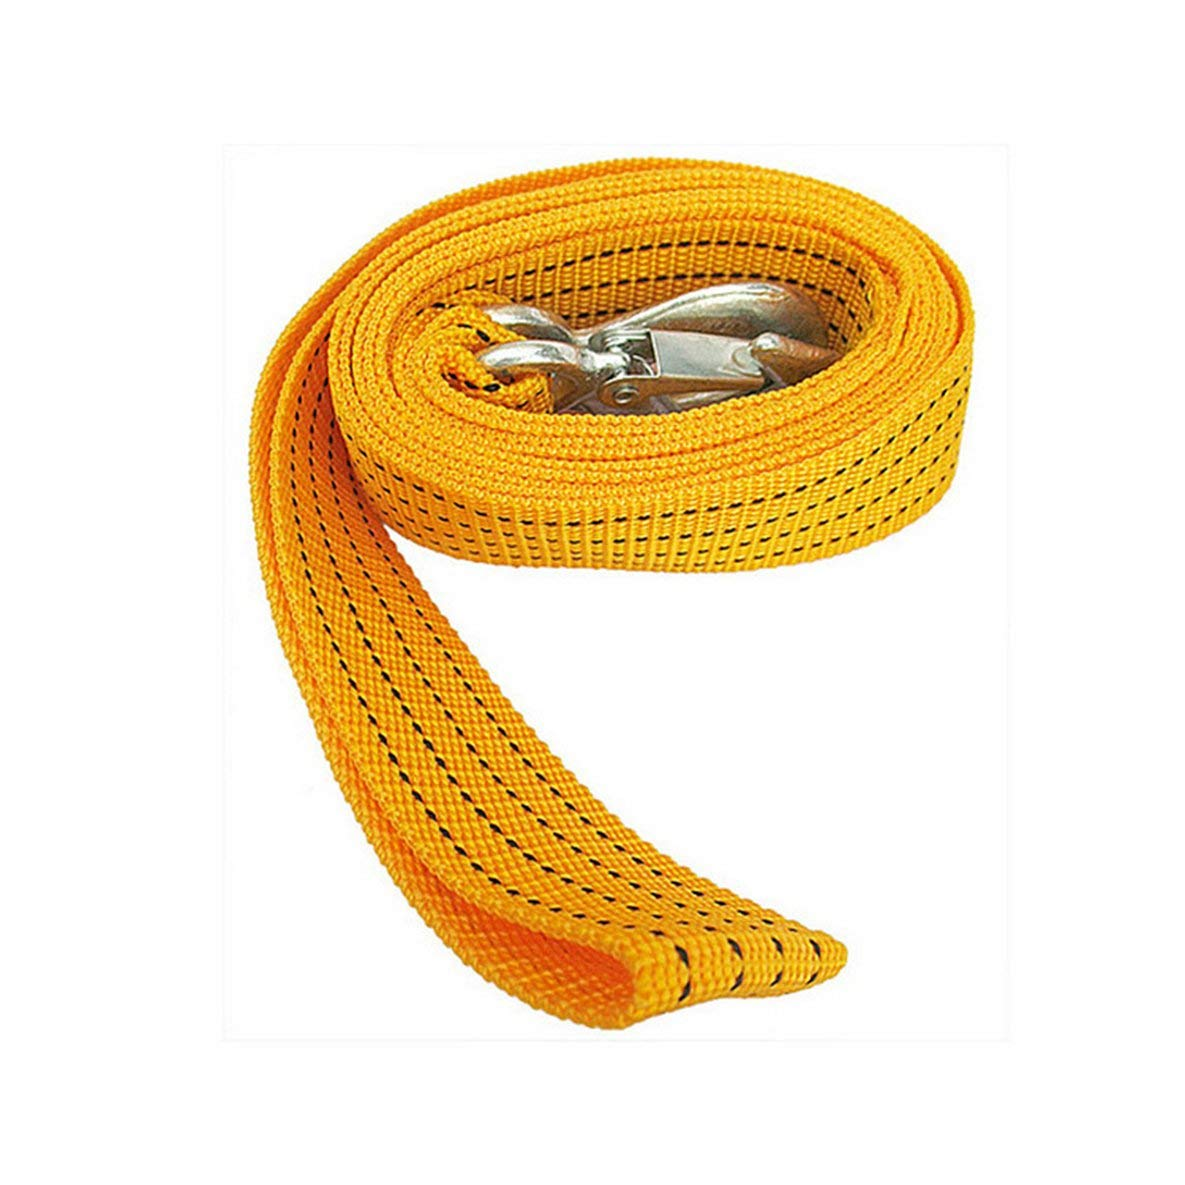 Noradtjcca Polyester Car Traction Rope Car Safety Emergency Trailer With Car Tow Rope